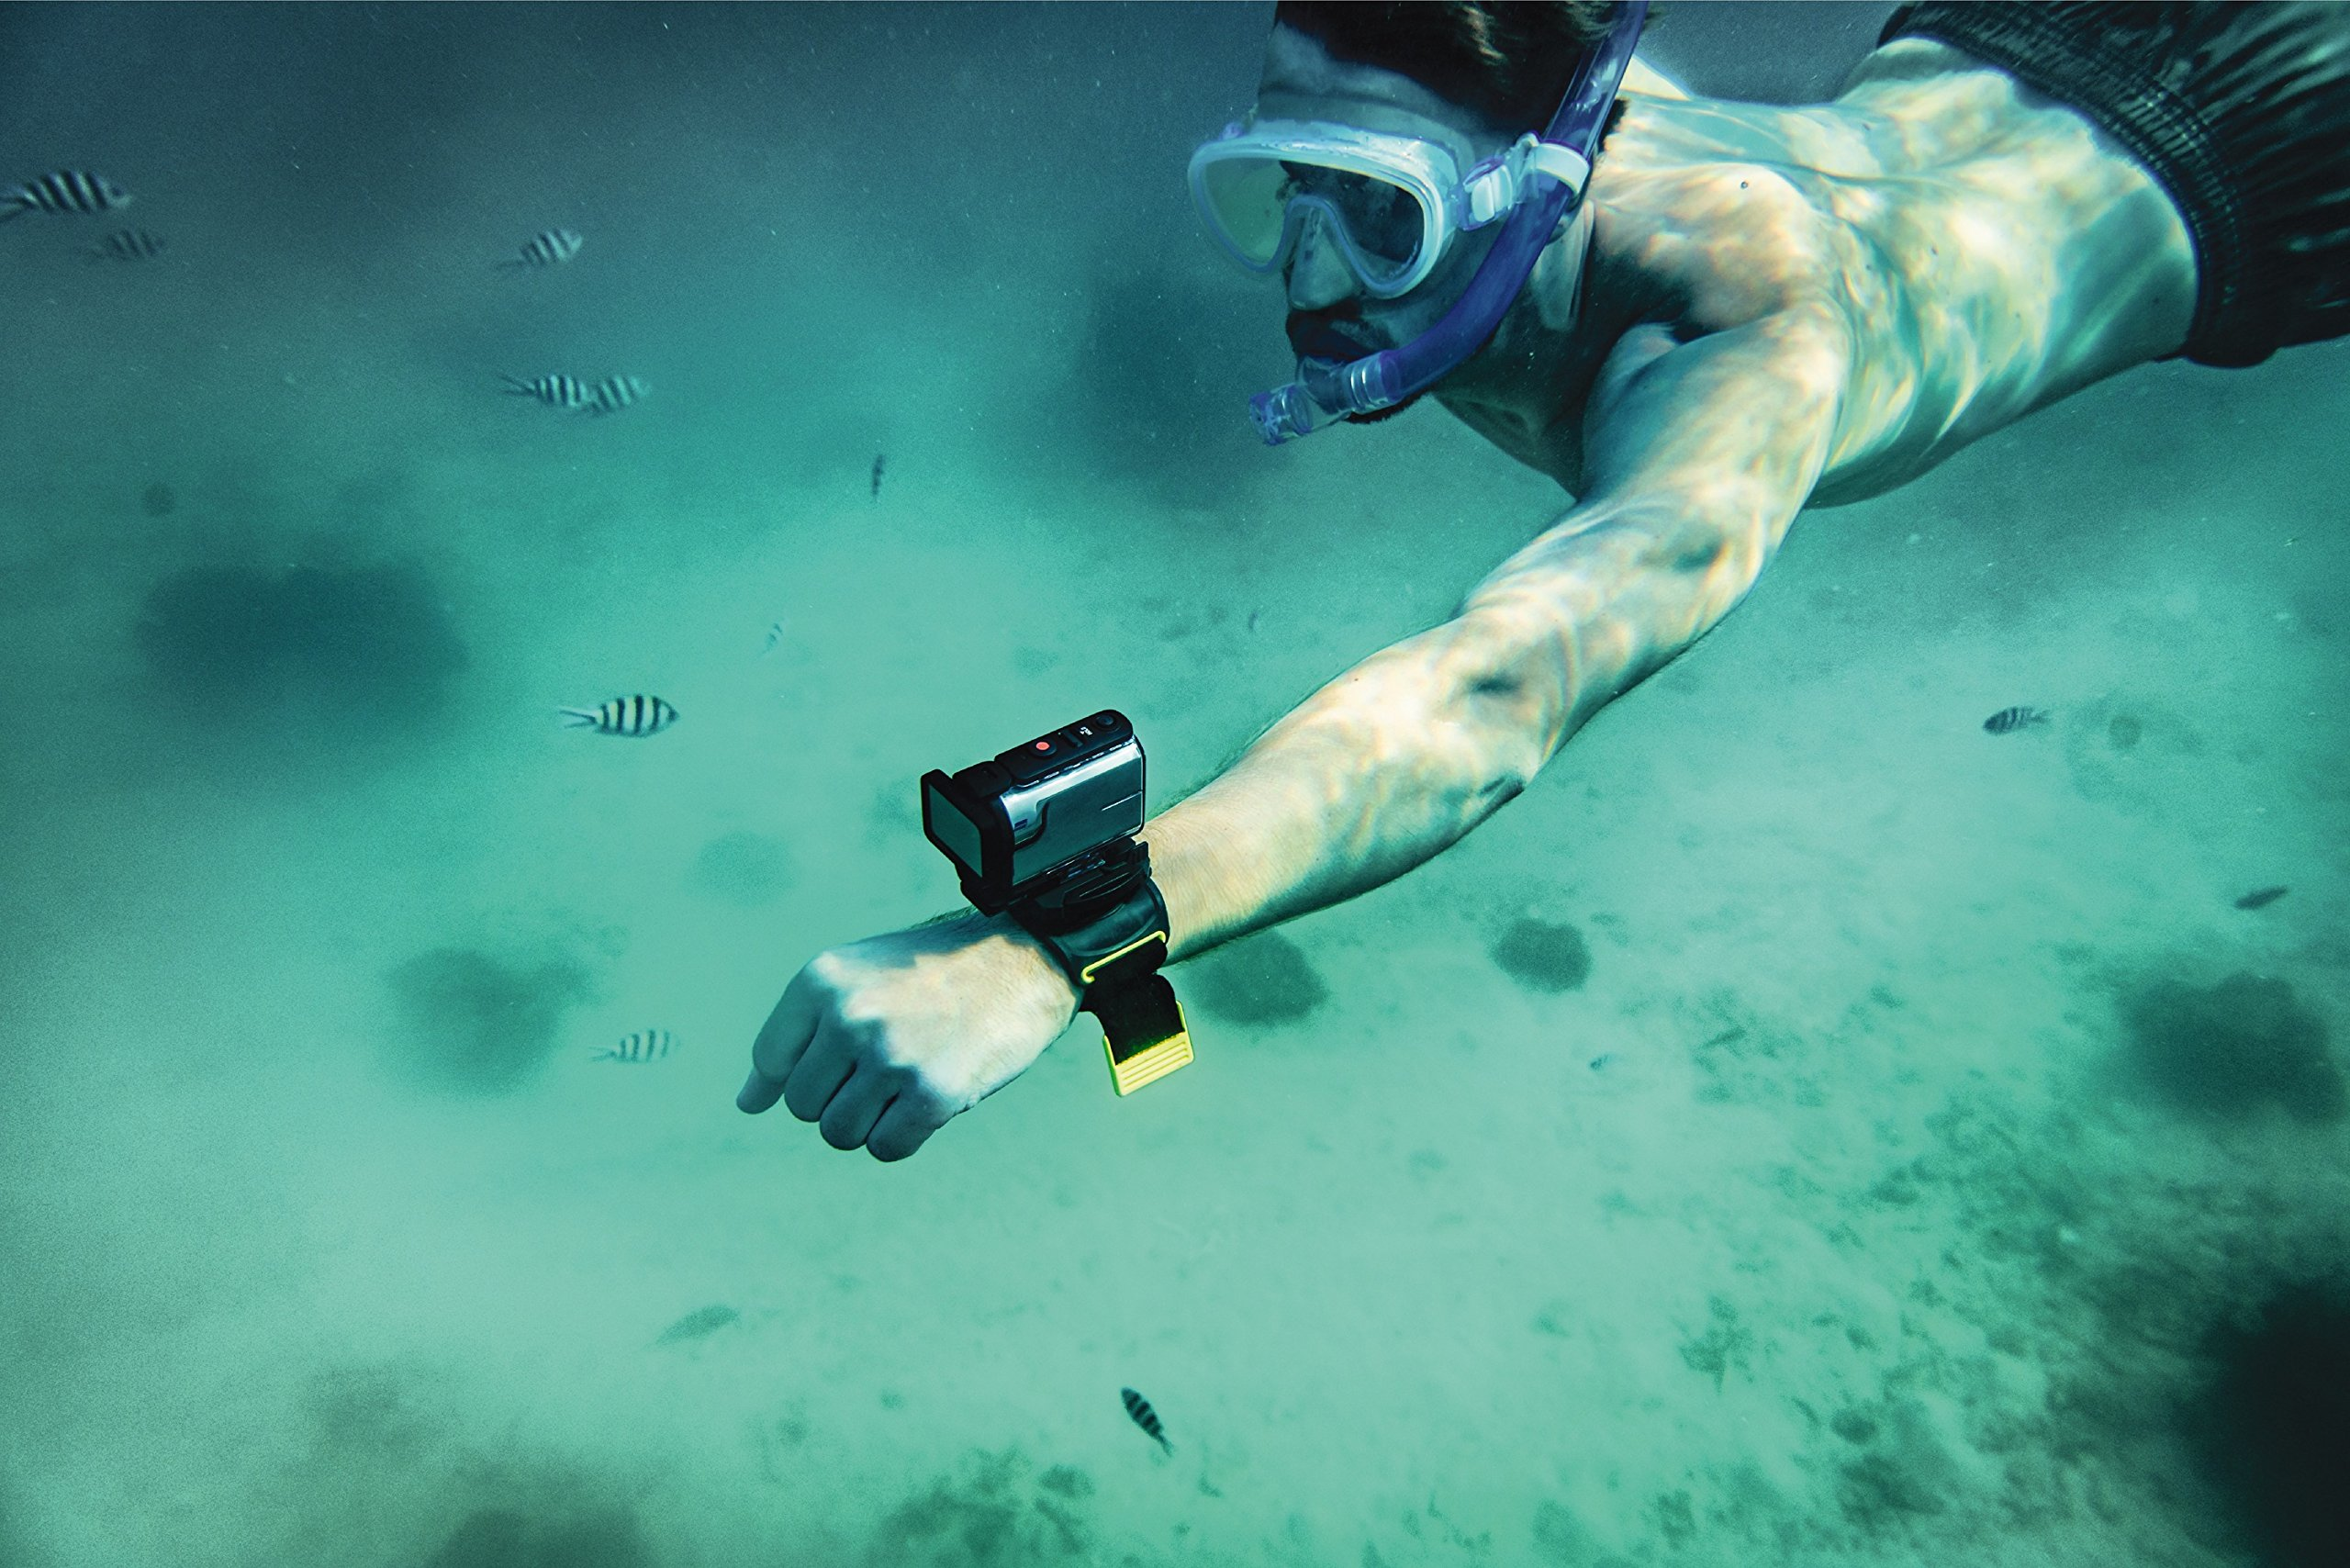 Sony MPKUWH1 Underwater Housing for Action Cam (Clear) by Sony (Image #5)